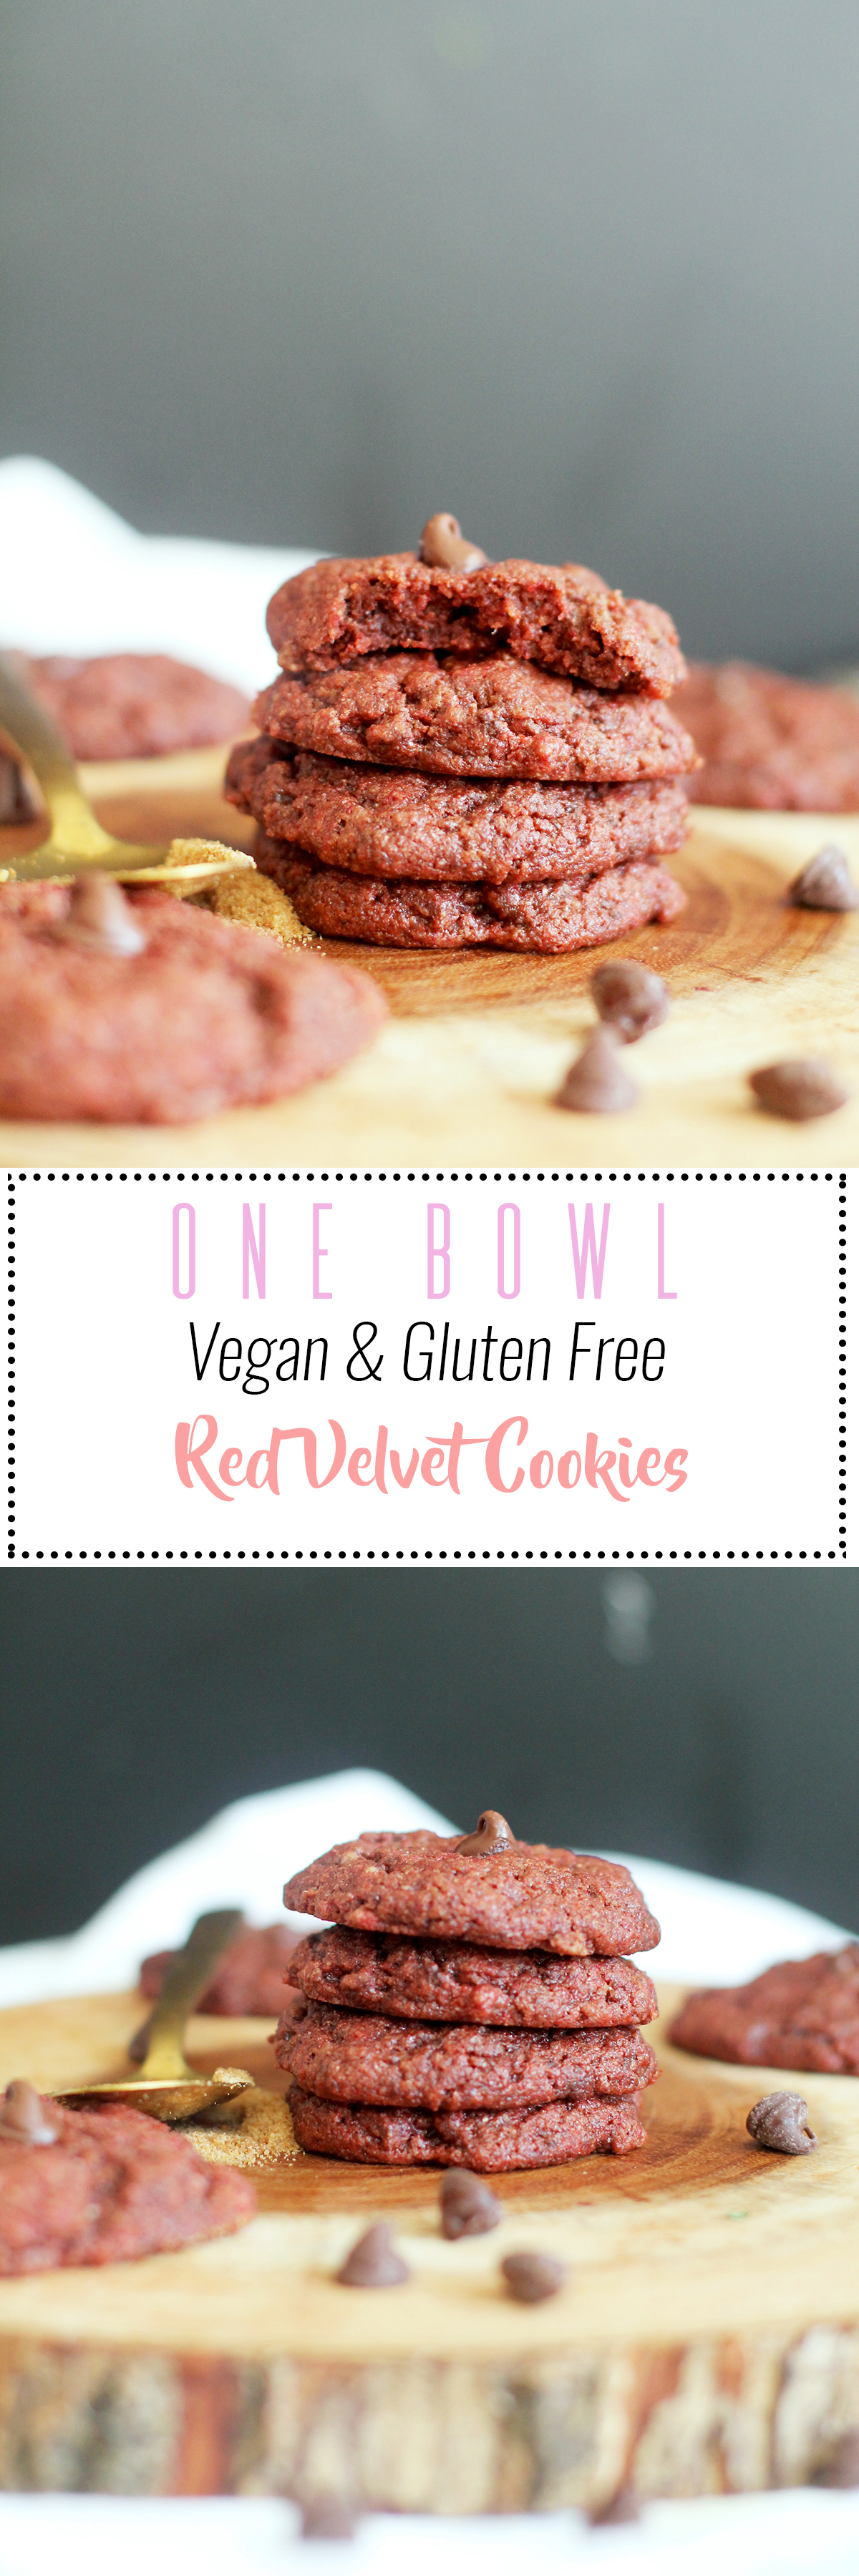 These one bowl red velvet cookies are vegan, gluten free, and absolutely delicious. They're naturally sweet, require one bowl, nine ingredients, and are the perfect dessert. Dunk them in some warm almond milk for a great treat!